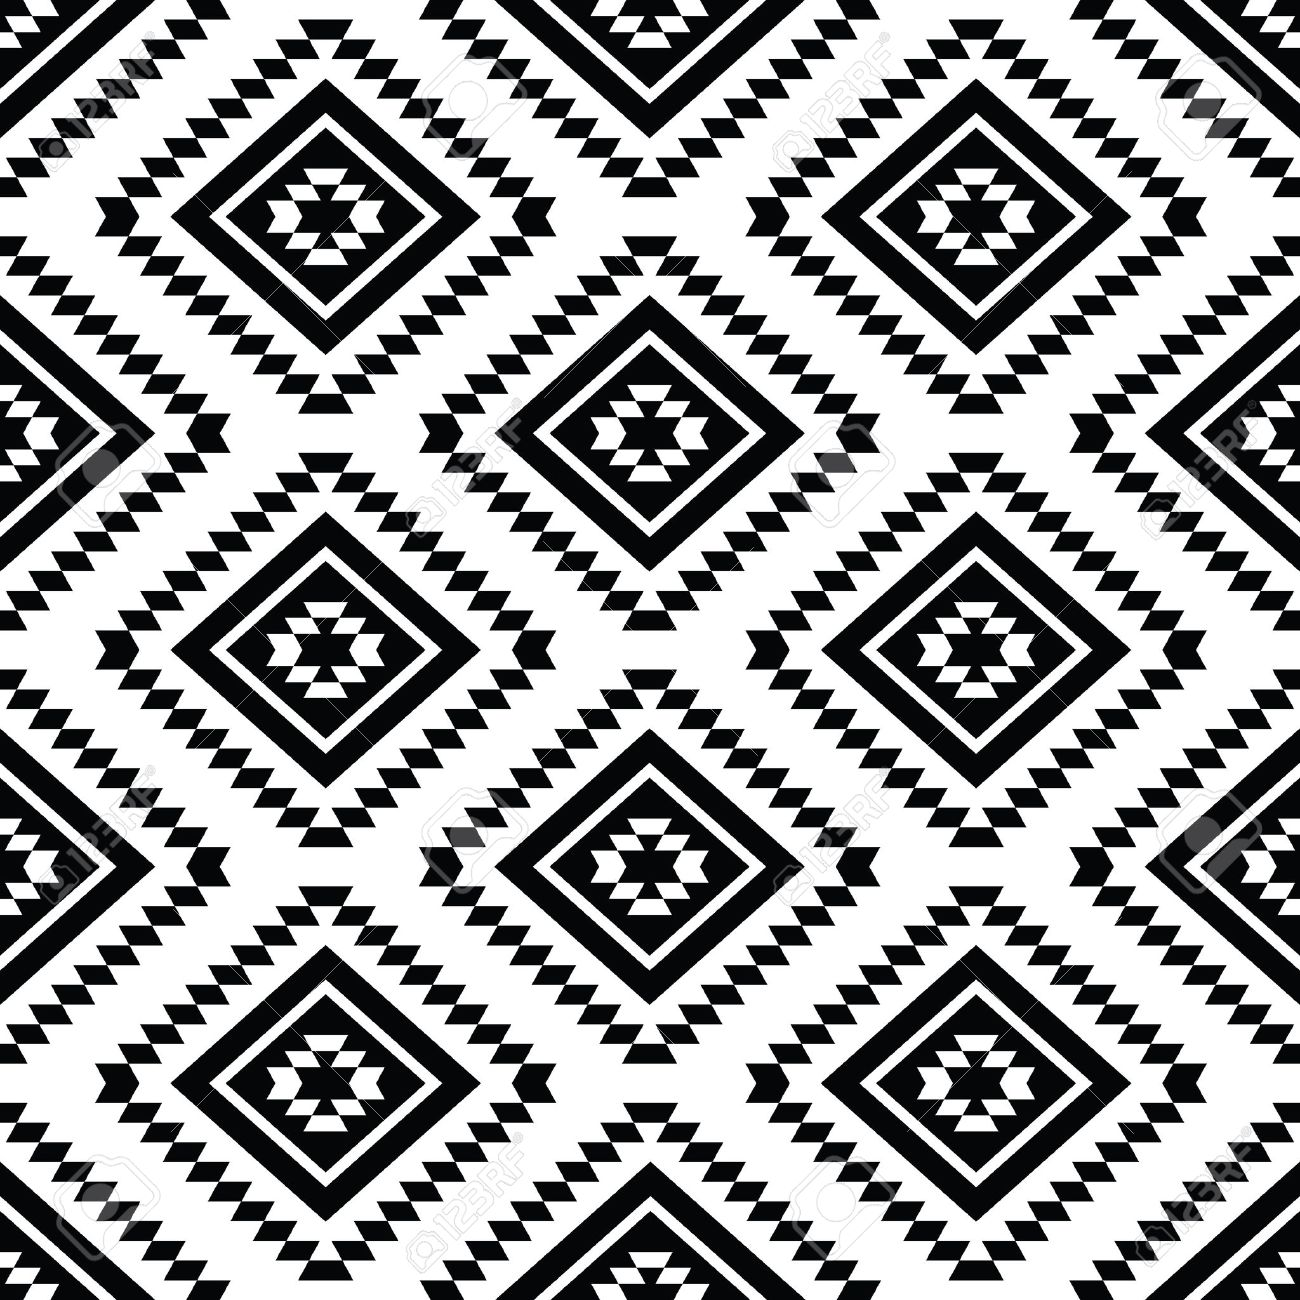 Background geometric mexican patterns seamless vector zigzag maya - Tribal Seamless Pattern Aztec Black And White Background Stock Vector 26660470